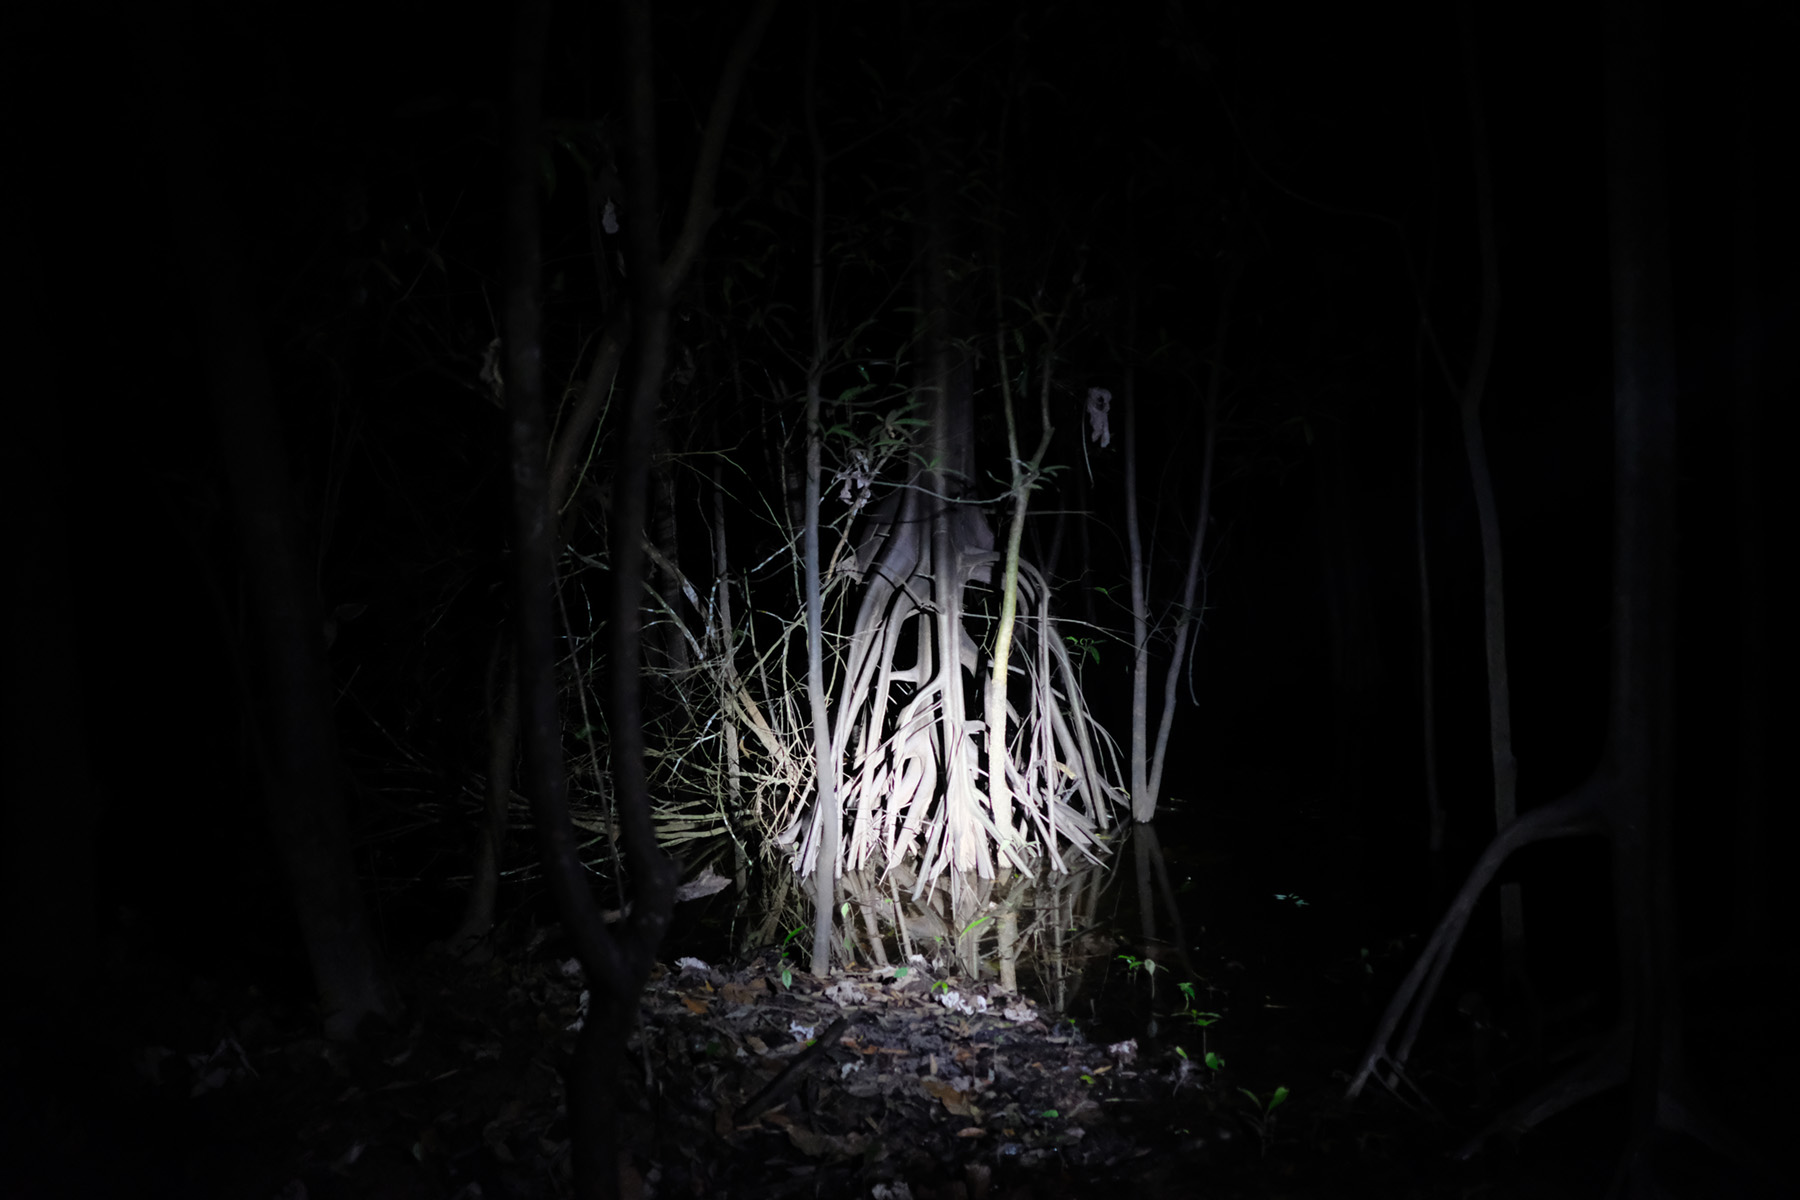 Headlamp-lit Bare Roots in Rainforest / Tilted Horizon